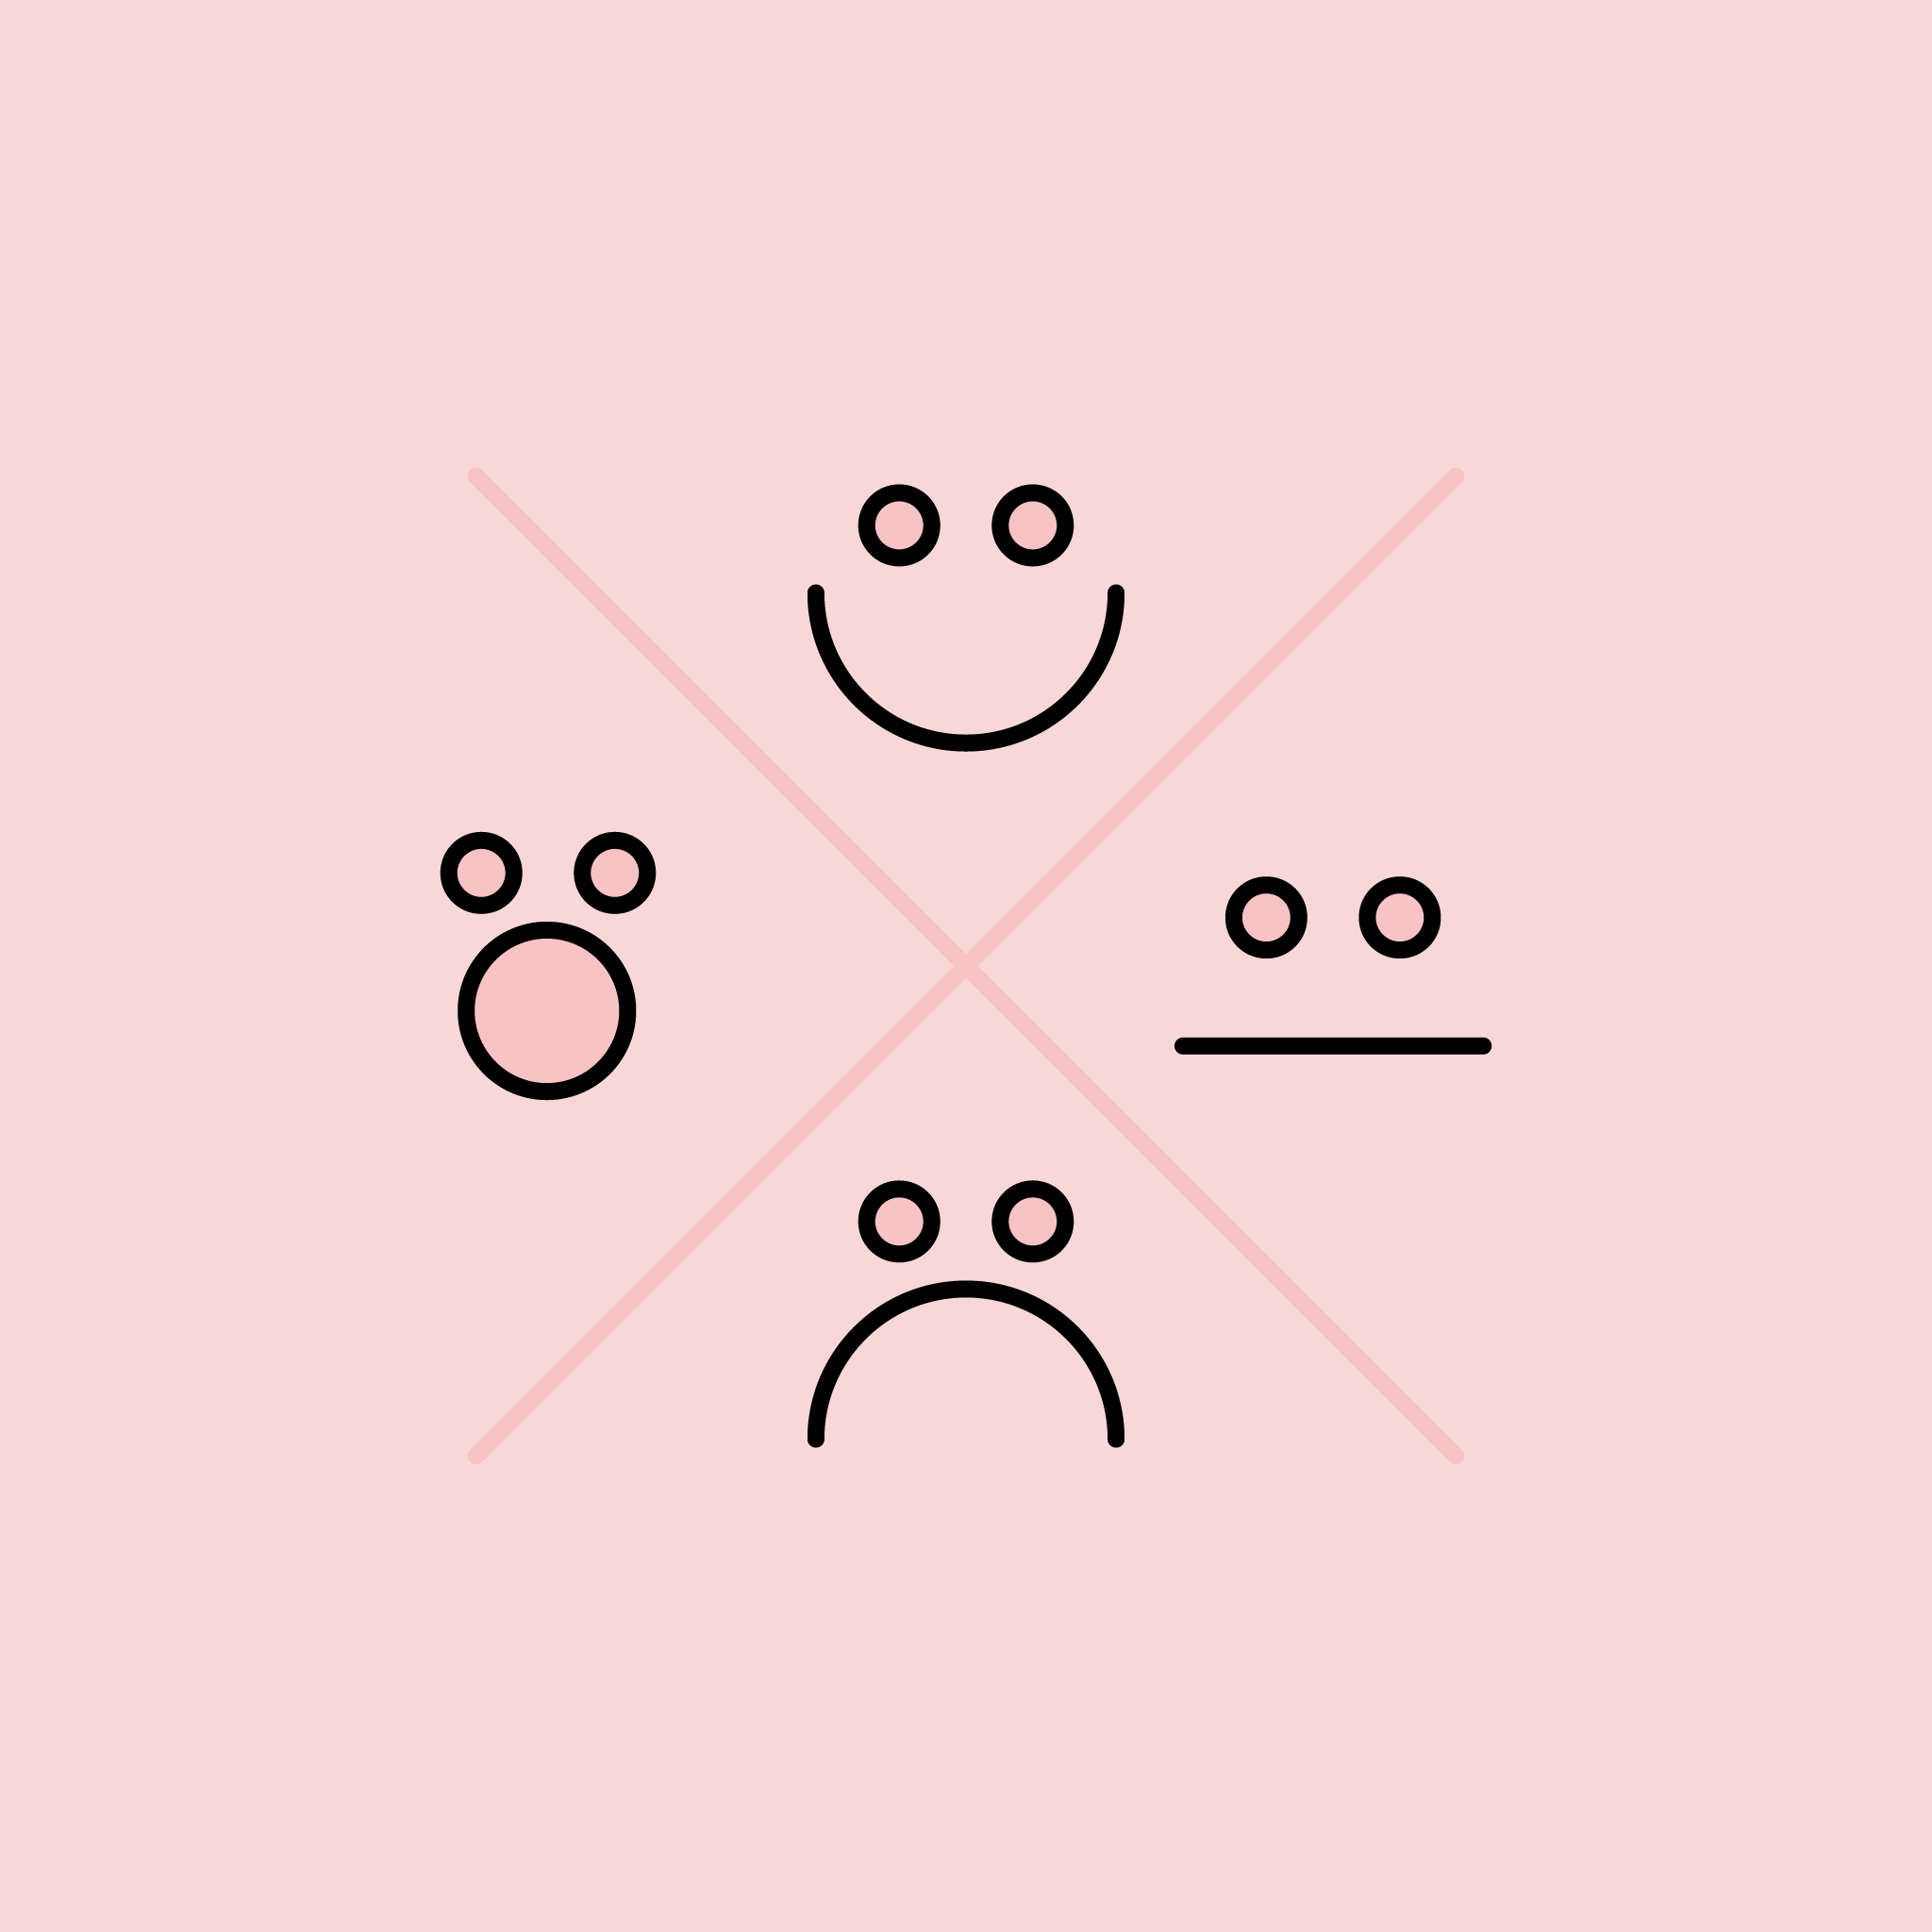 Illustration of smiley faces with different expressions